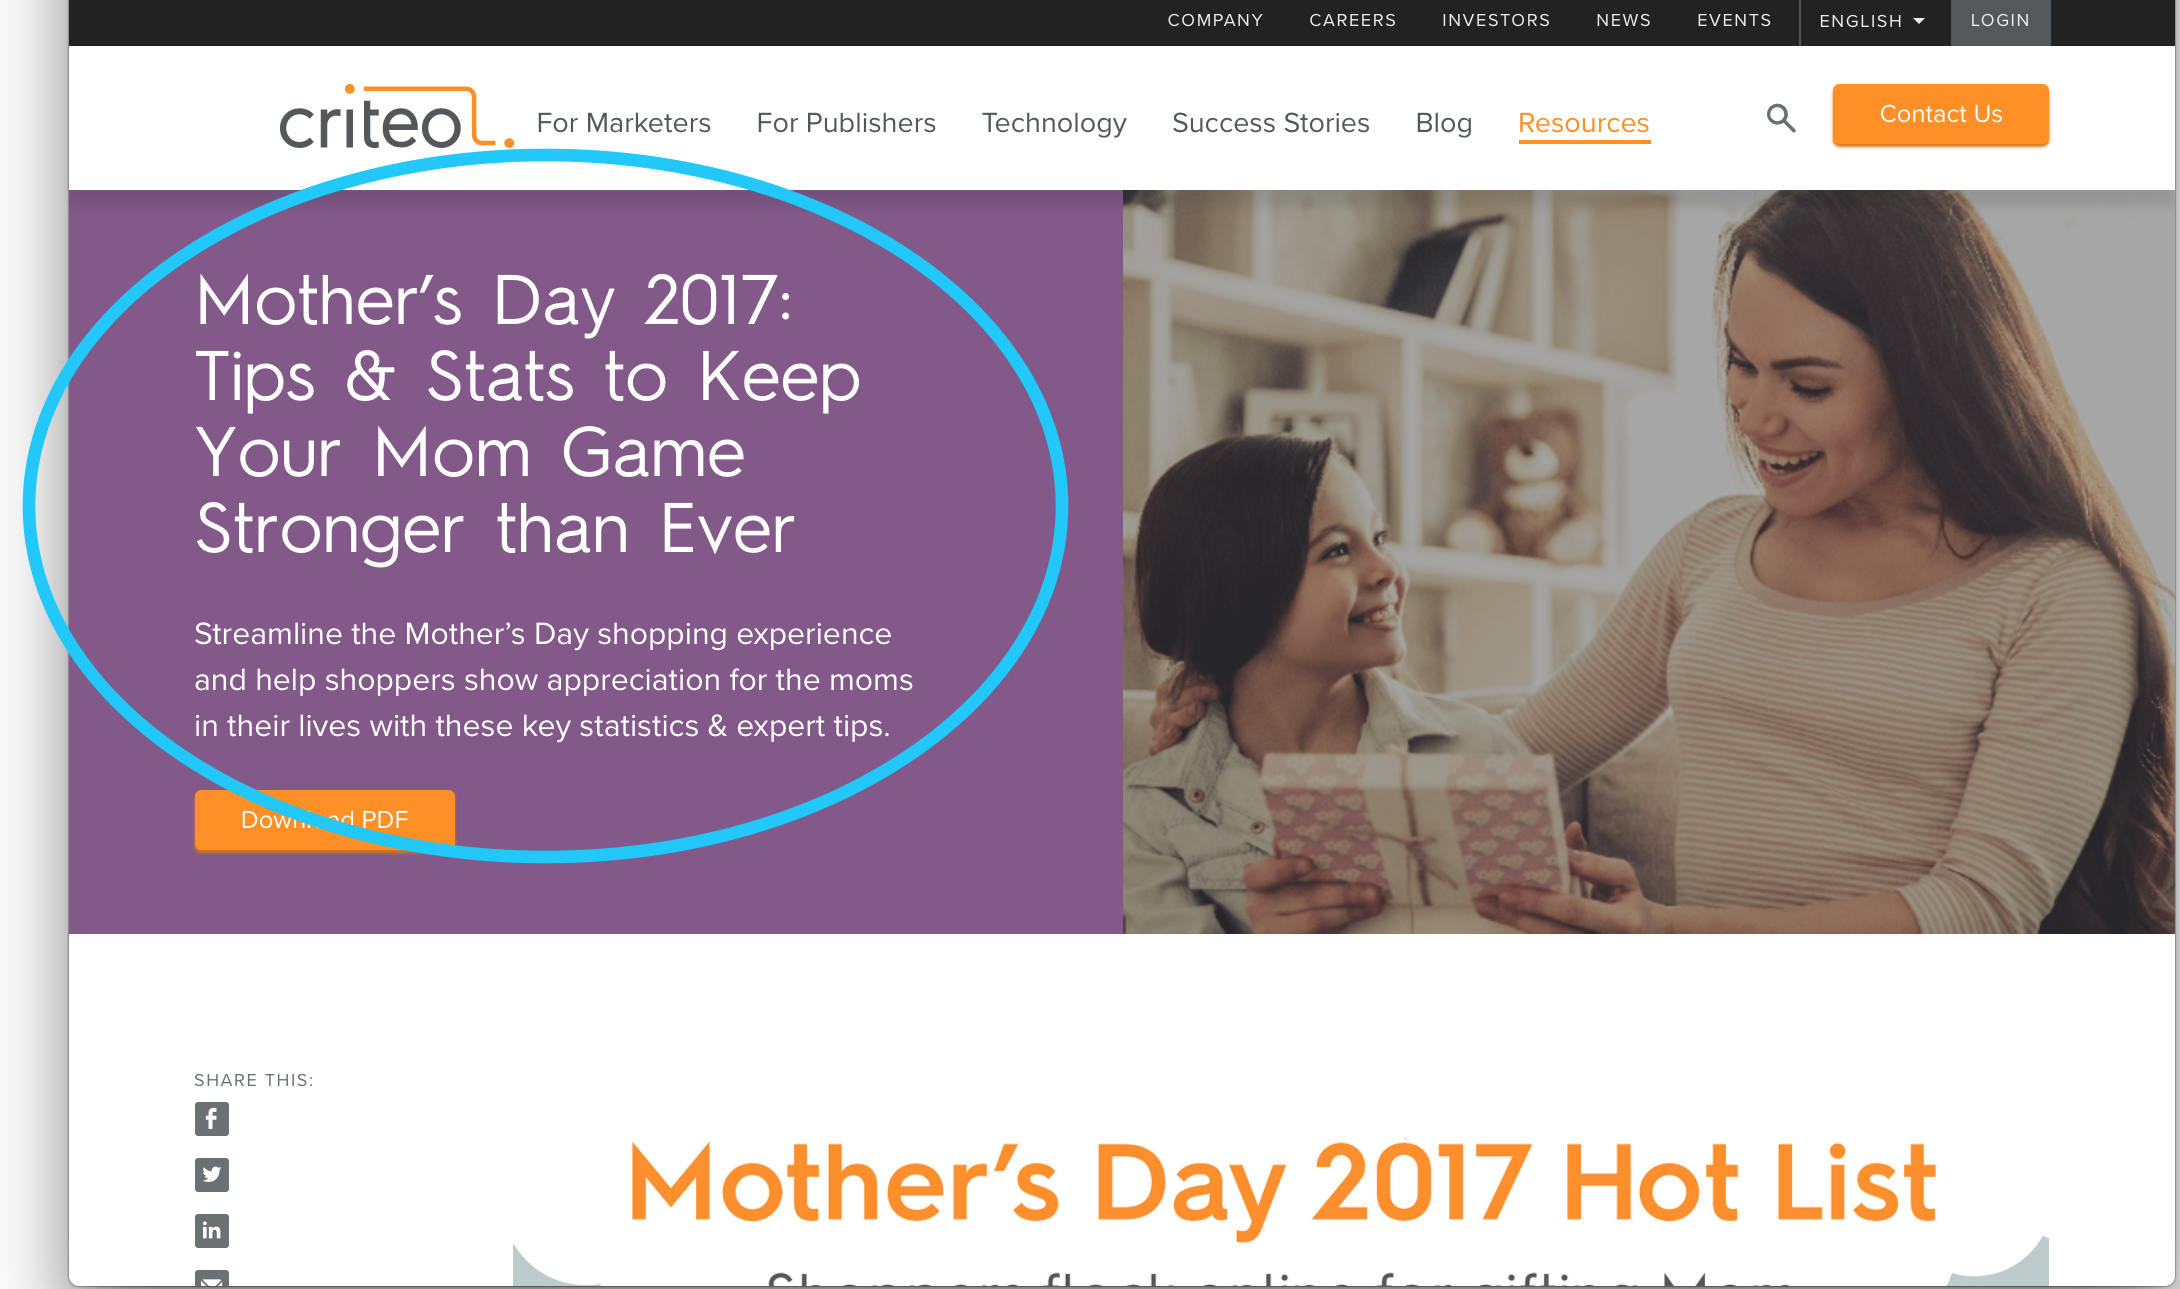 Mother's Day Marketing Study (B2B Landing Page, 2017)